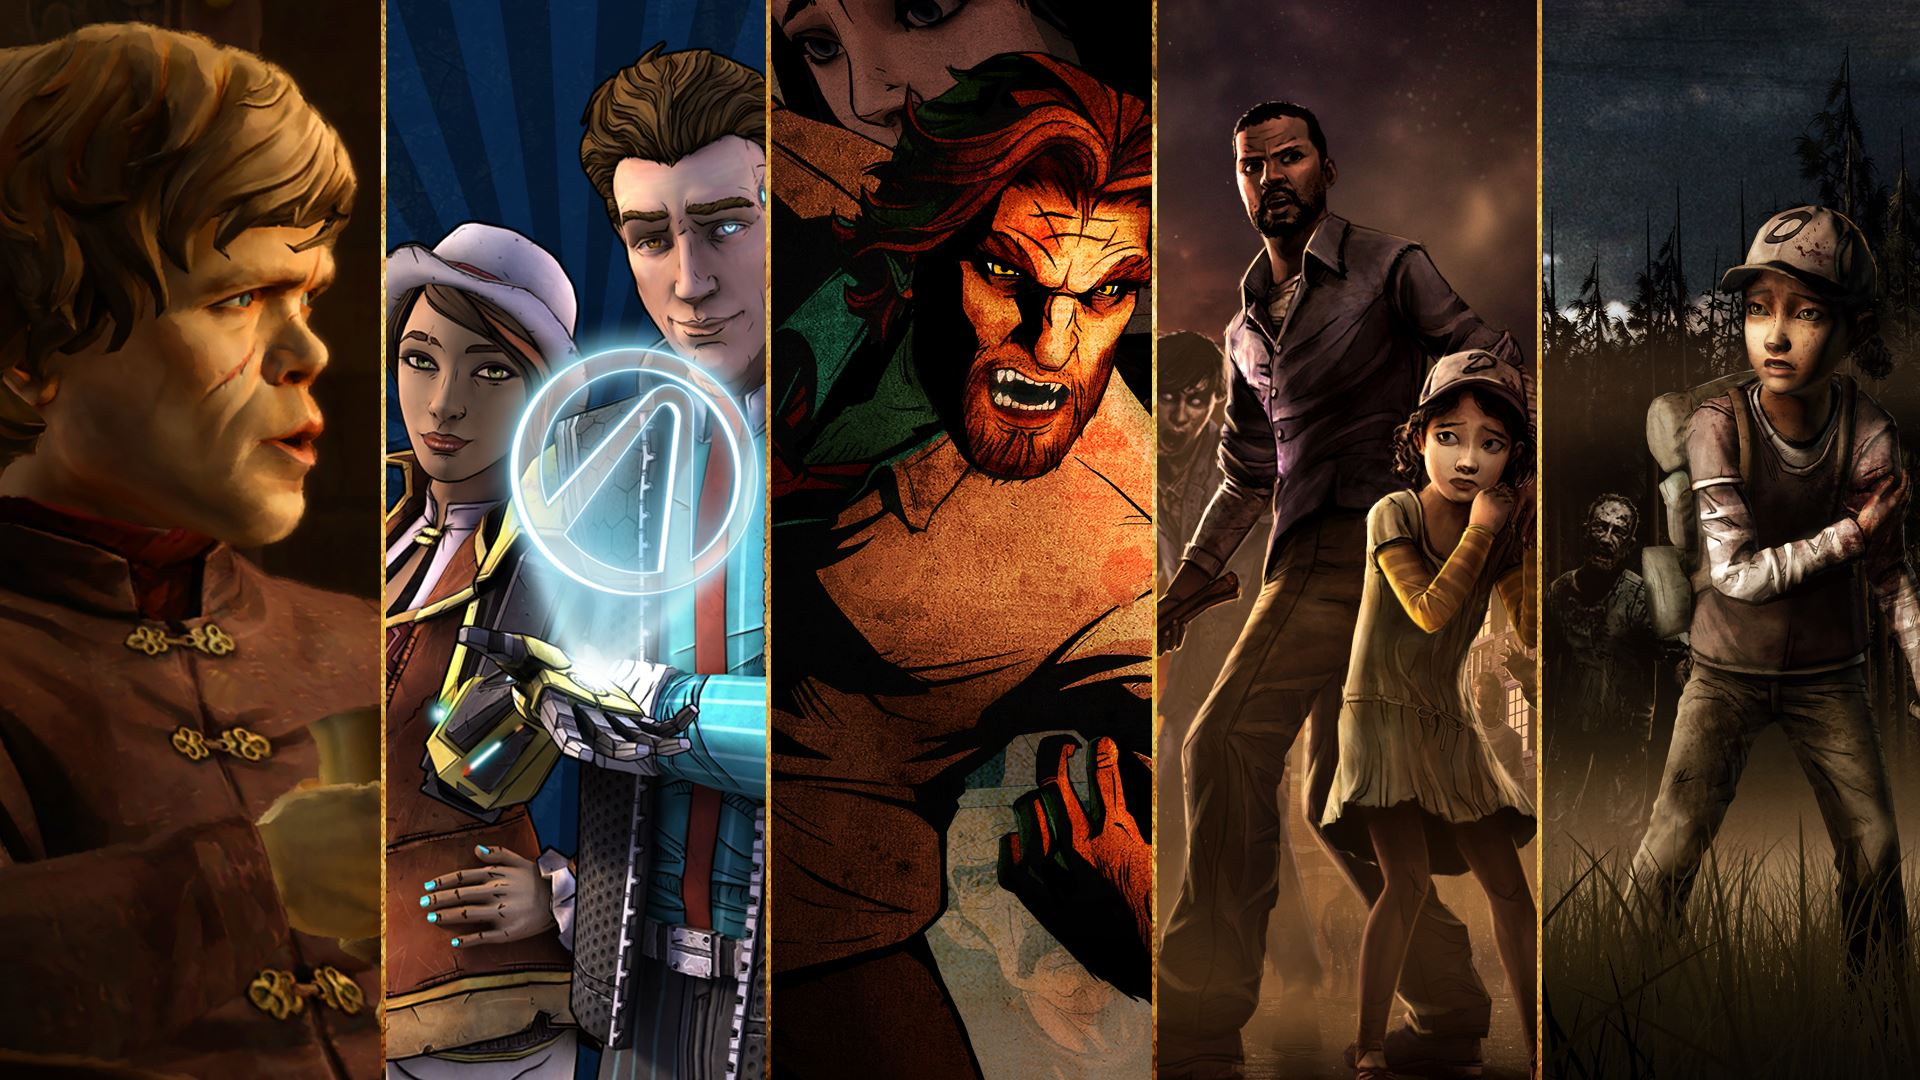 Telltale Games is finally replacing its decade-old engine